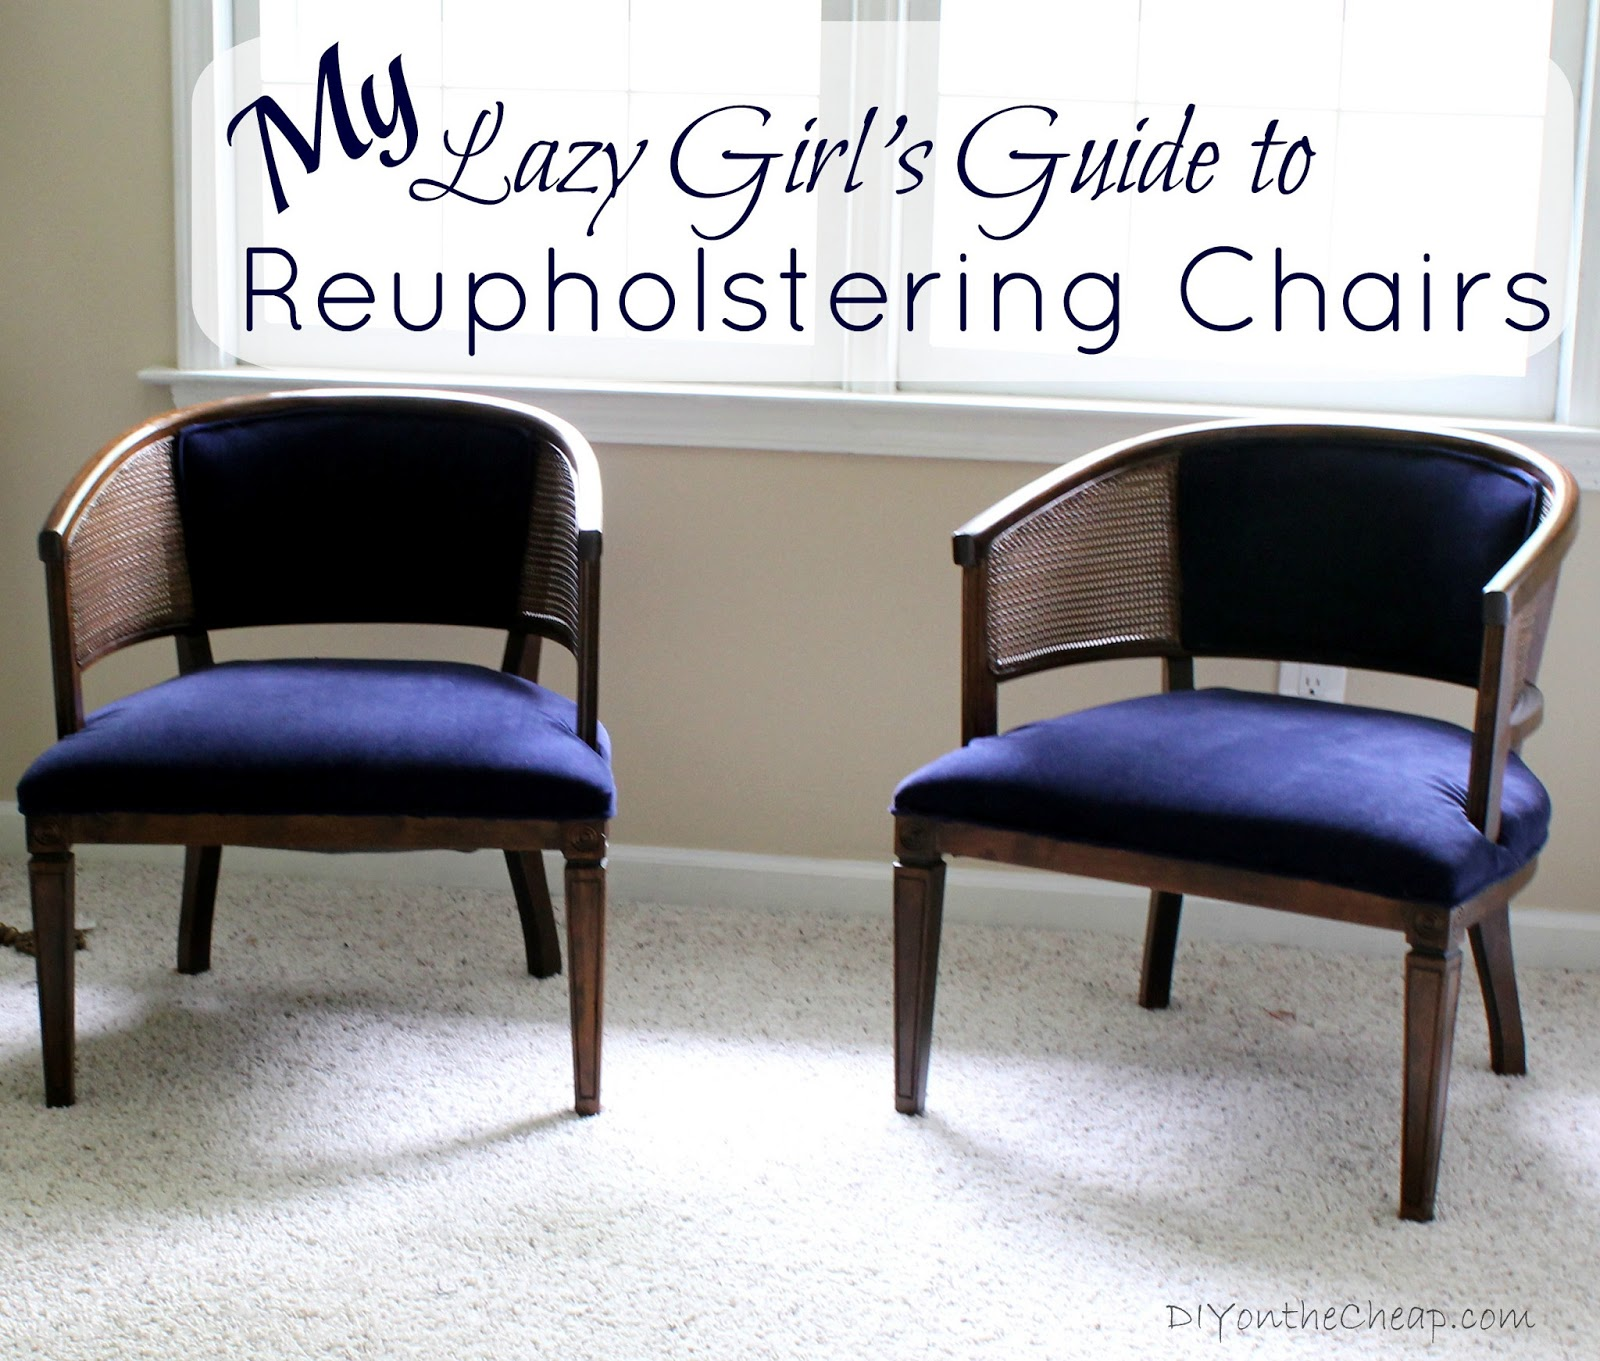 Reupholstering Chairs Diy How To Upholster A Chair How To